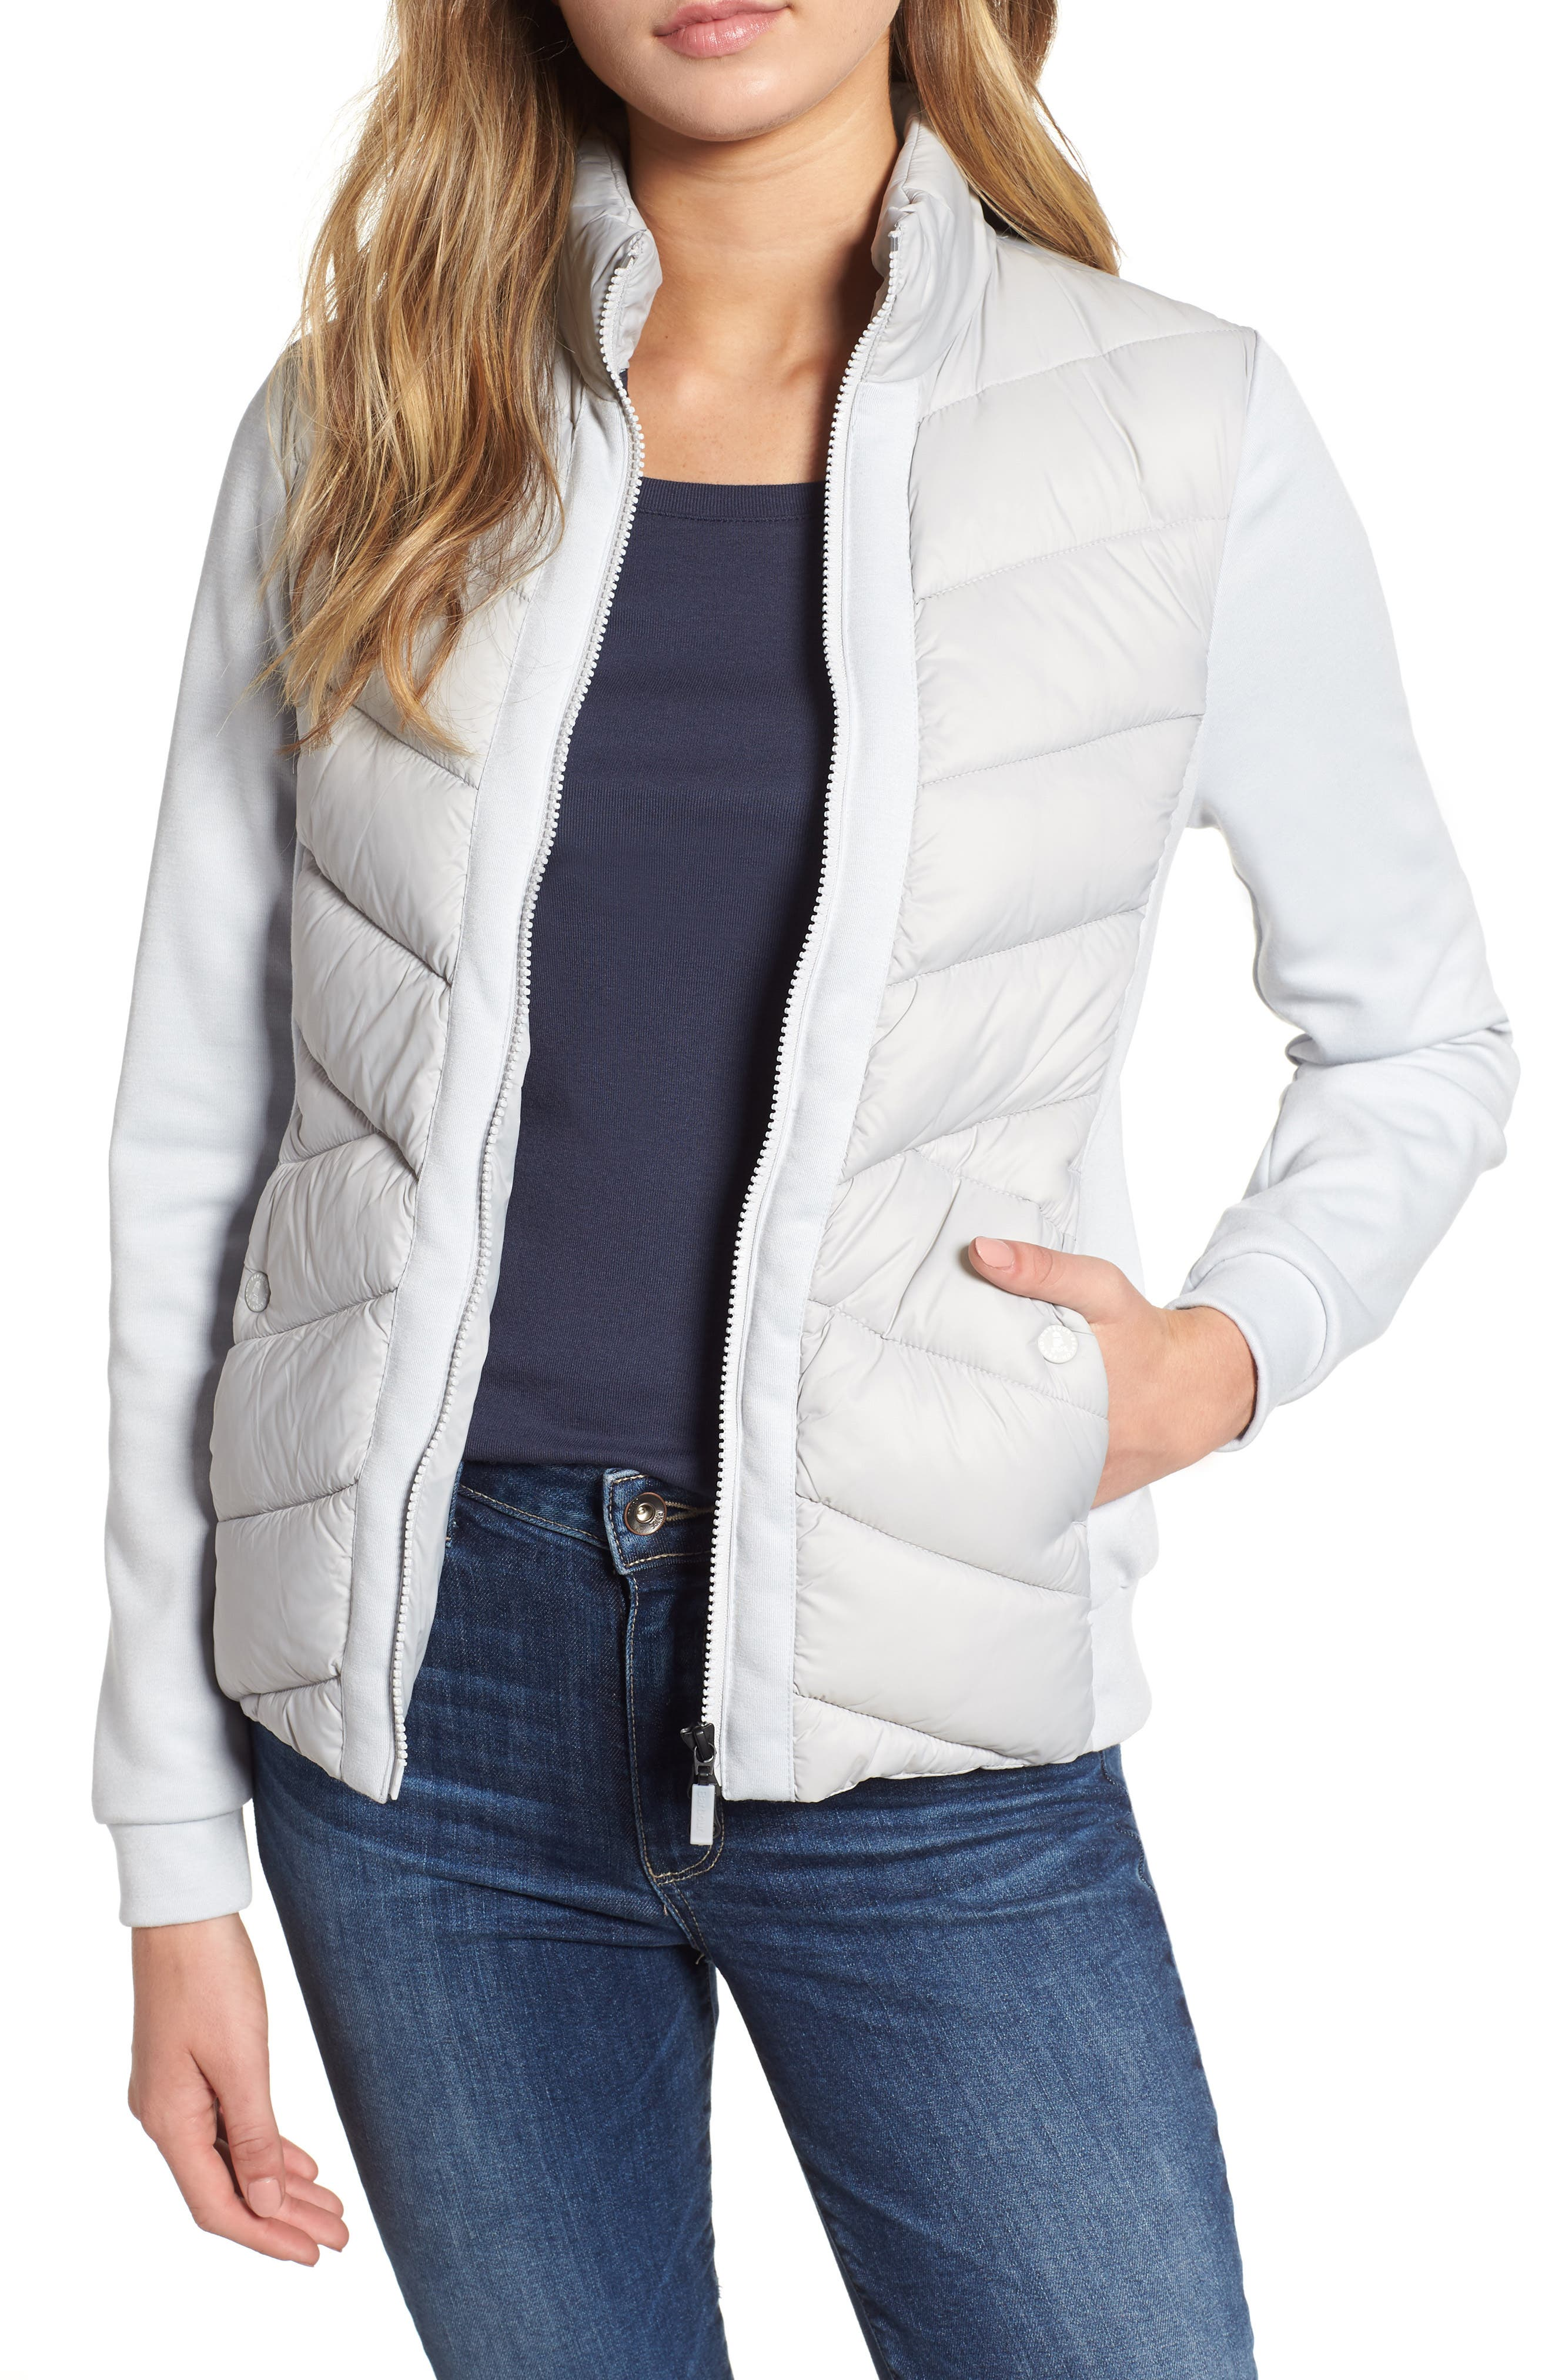 BARBOUR Hirsel Chevron Quilted Sweater Jacket, Main, color, ICE WHITE/ ICE WHITE MARL